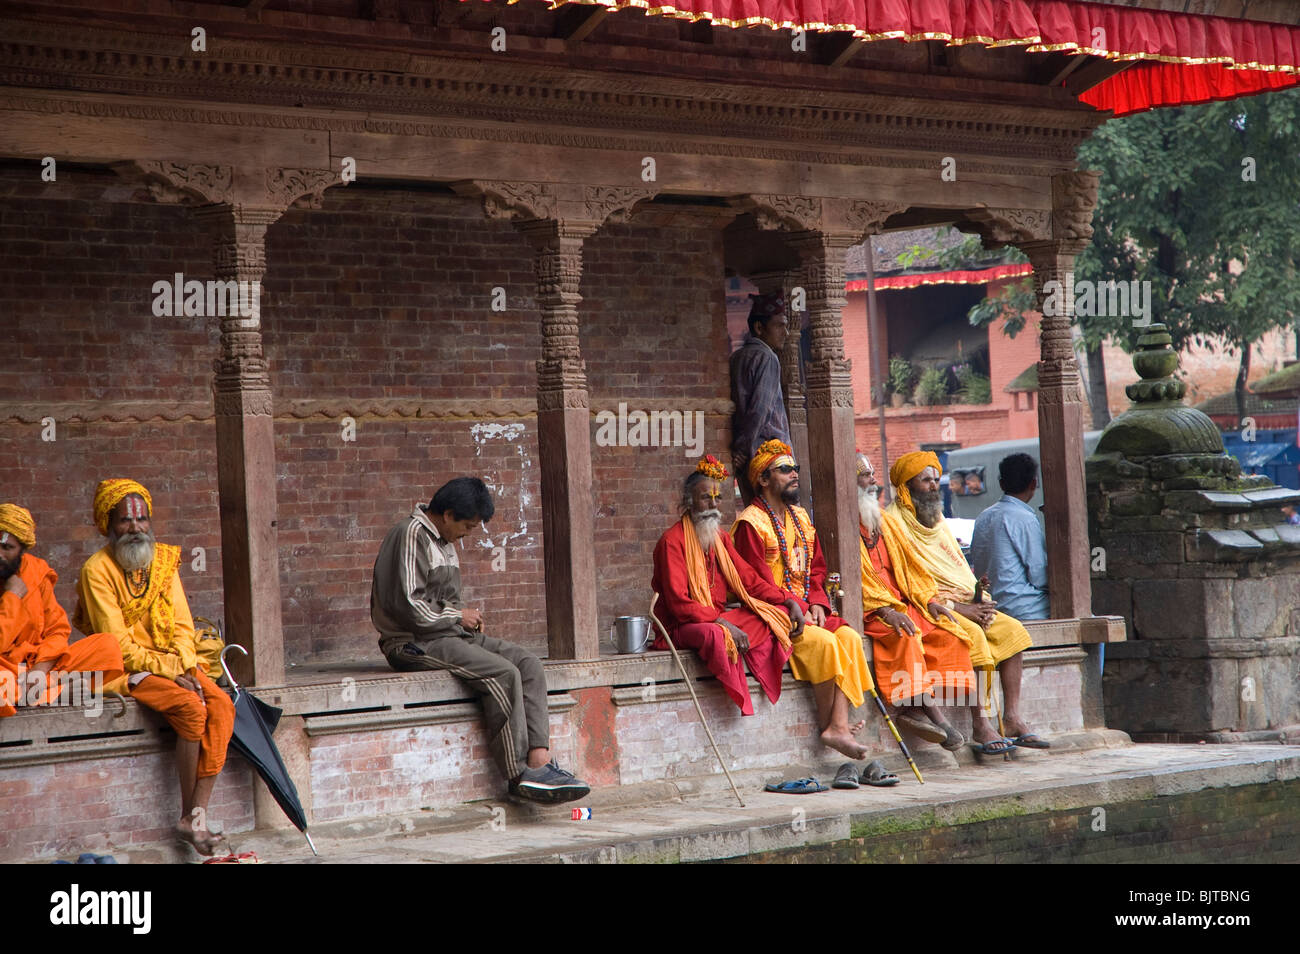 Sadus or holy men sit outside a temple in Durbar Square, Kathmandu, Nepal. - Stock Image